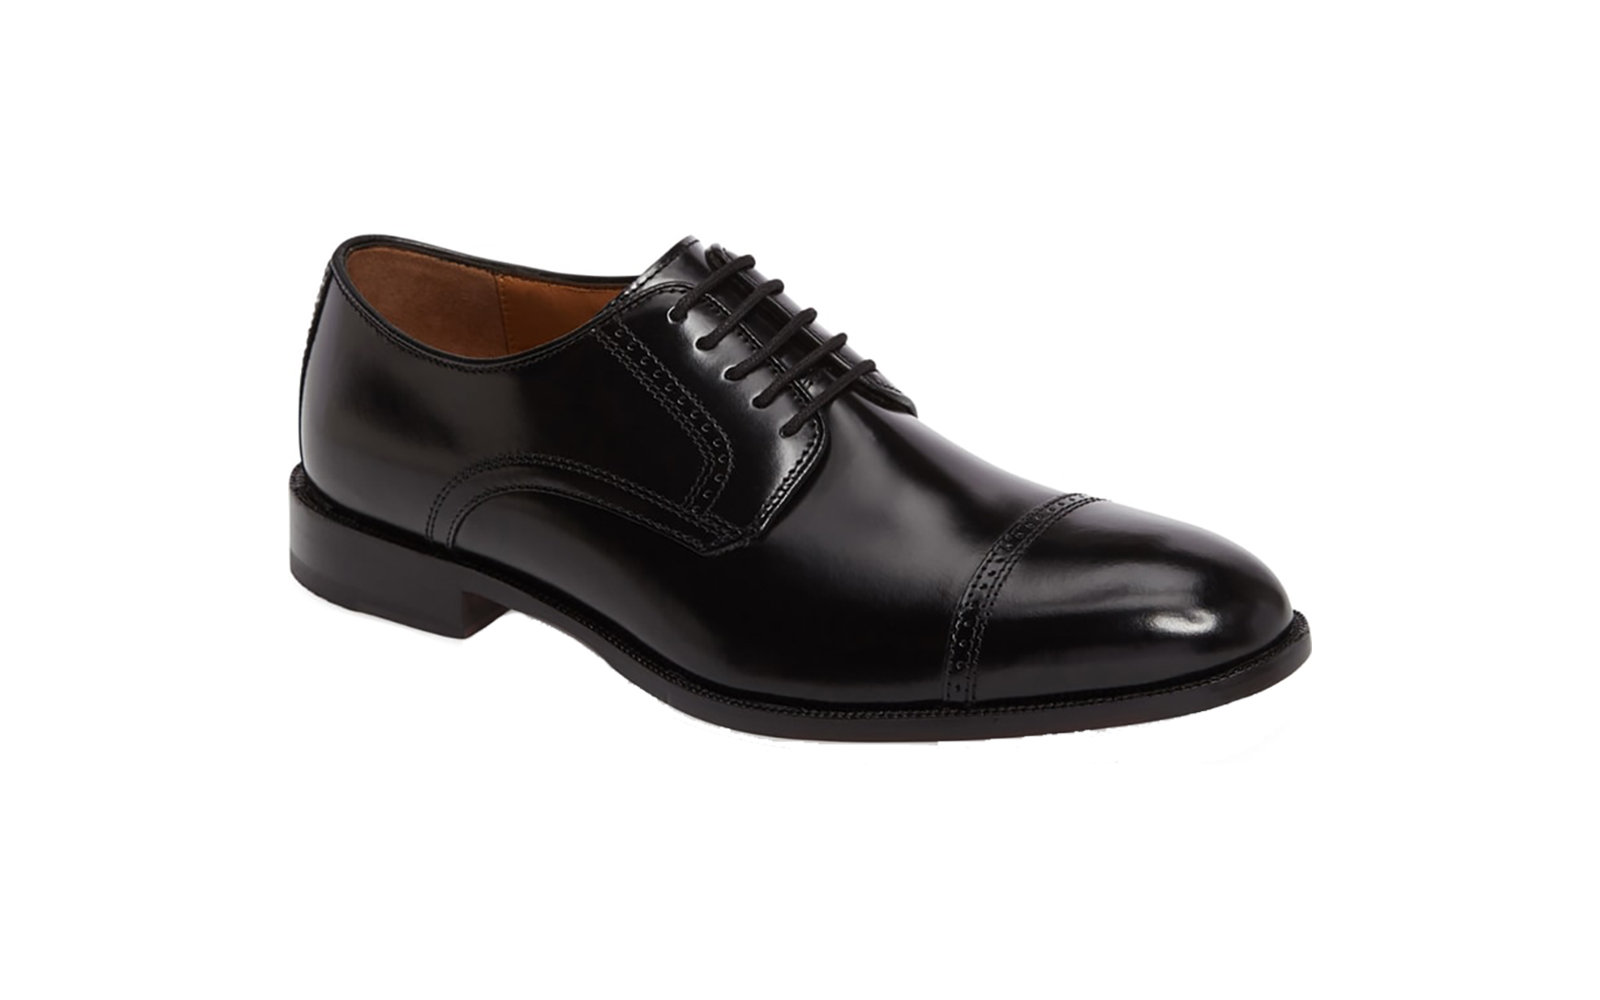 a10485eba1 The 12 Most Comfortable Dress Shoes for Men | Travel + Leisure